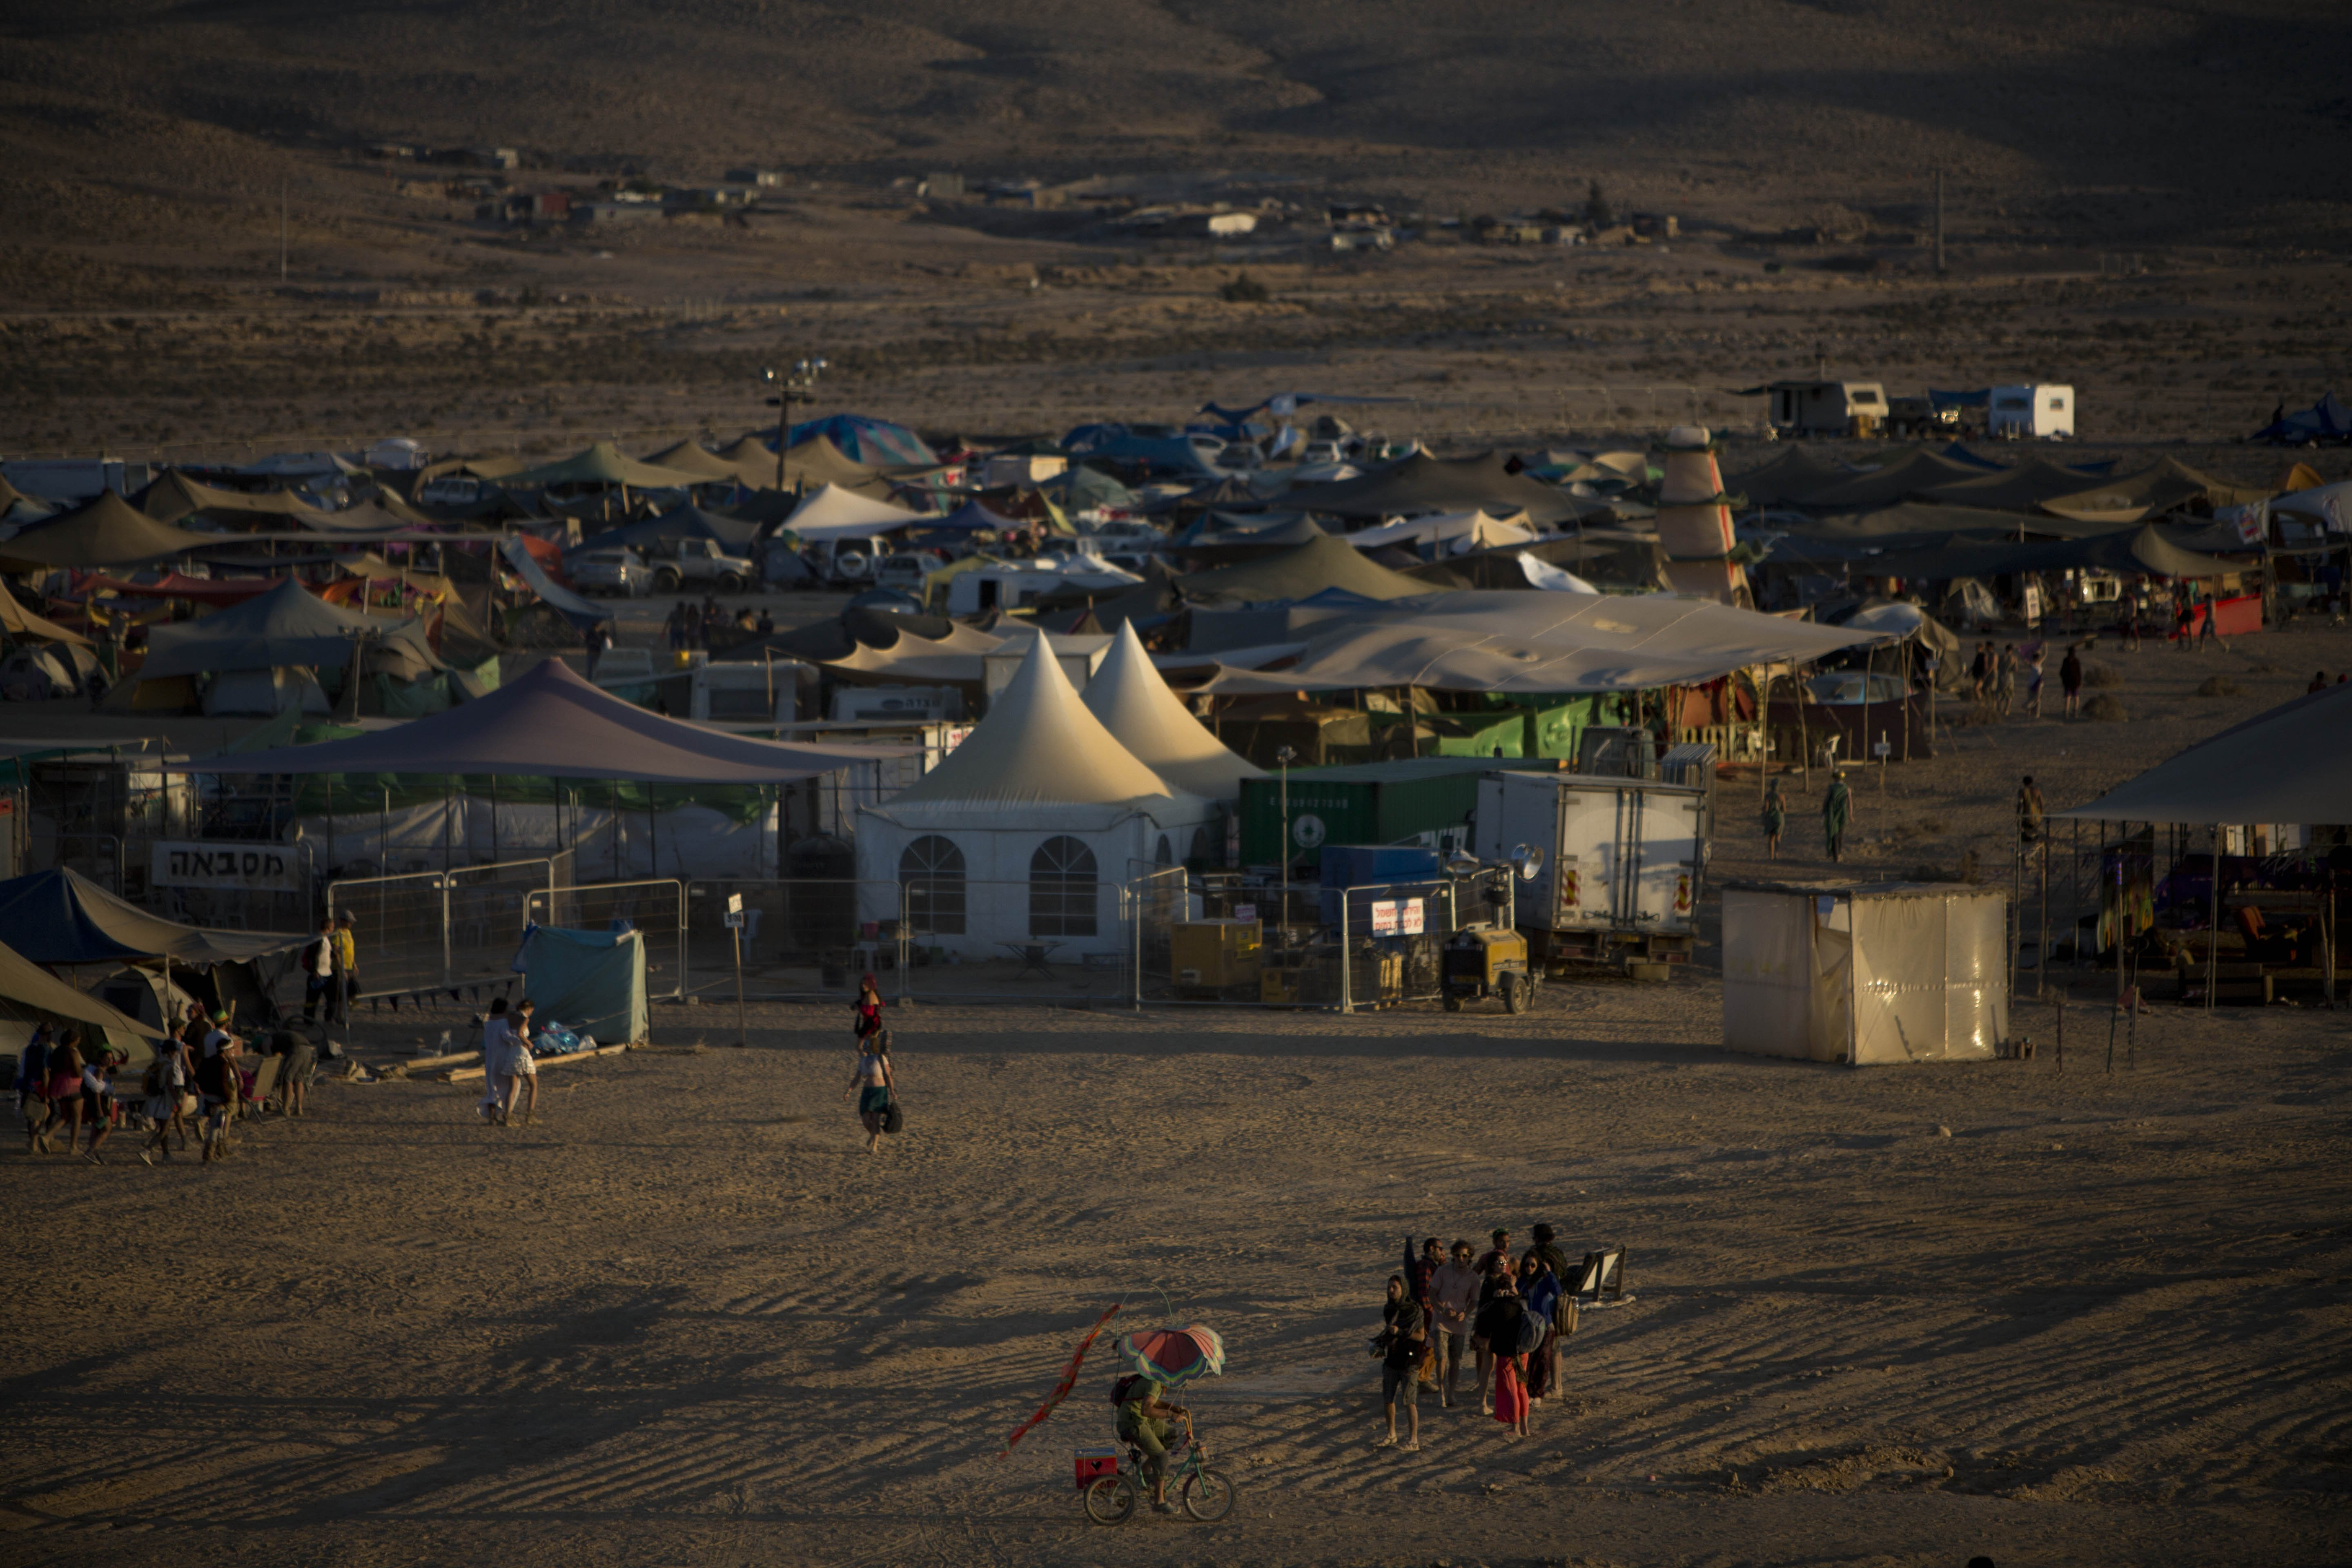 A general view of the playa in the Negev Desert, Israel on June 6, 2014.